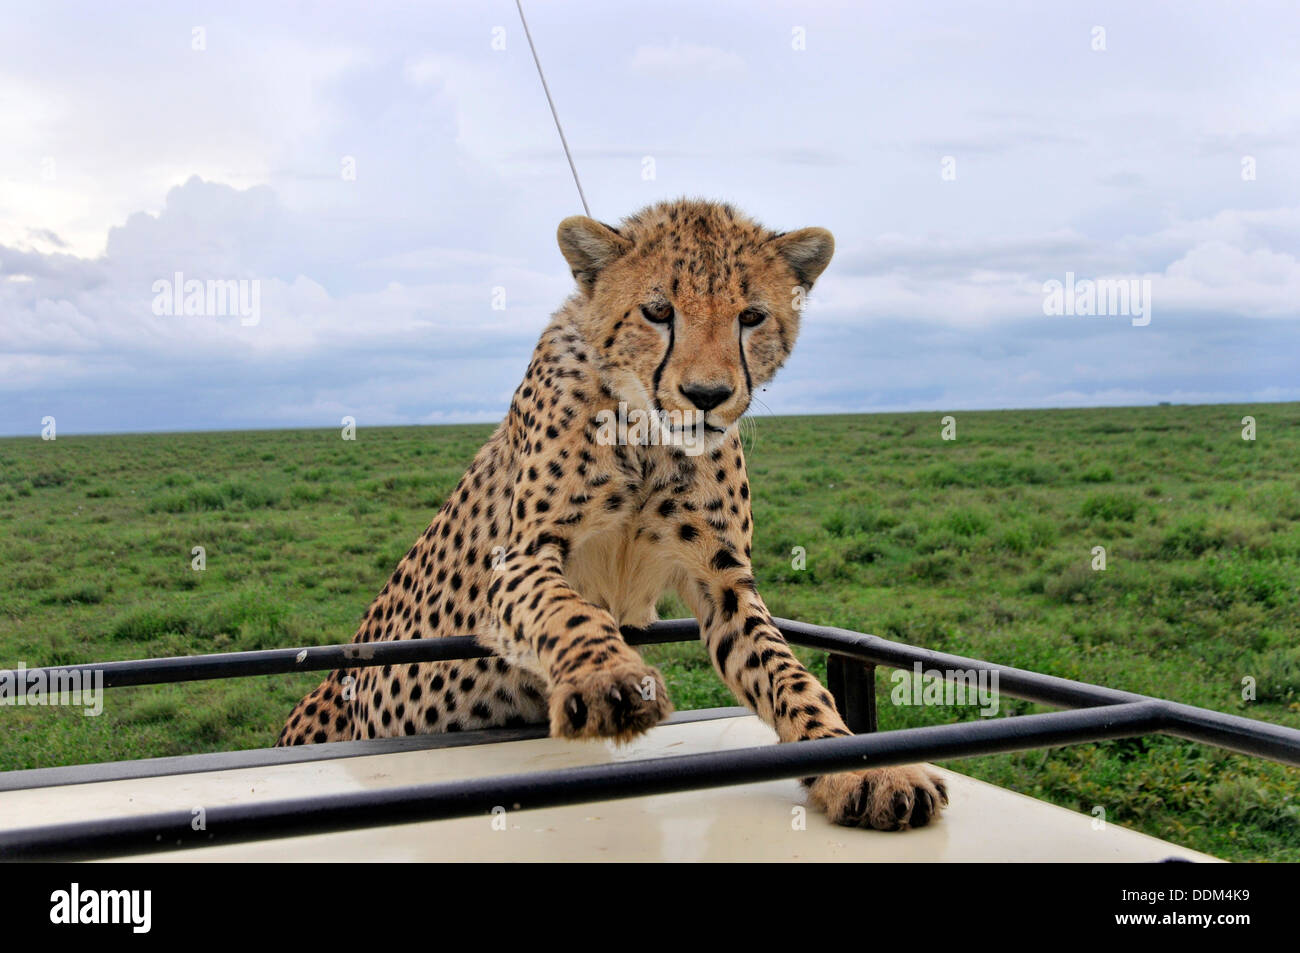 Young cheetah on roof of tourist vehicle in Africa Tanzania Collection - Stock Image